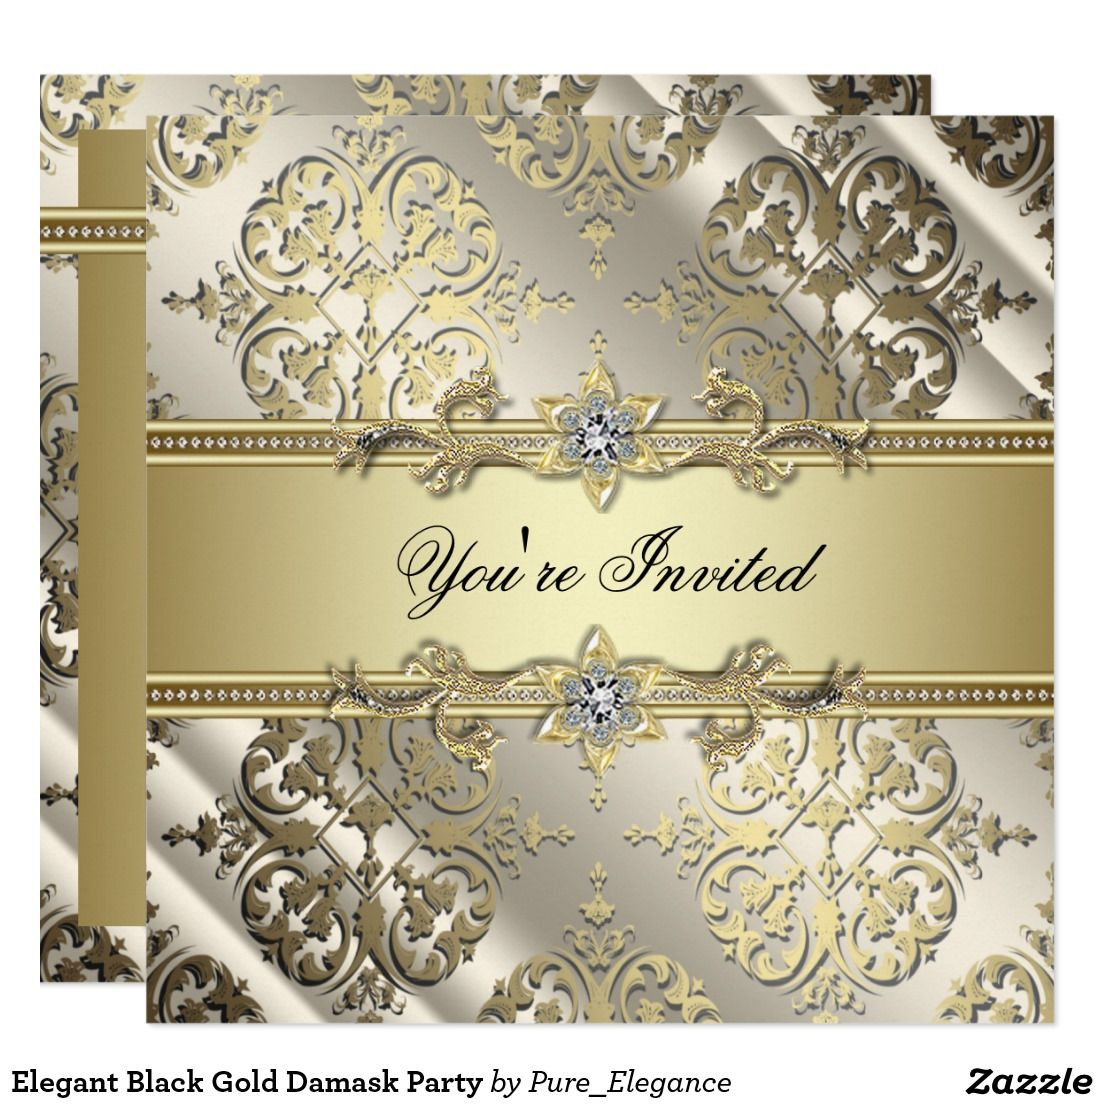 Elegant Black Gold Damask Party Card | Christmas Party Invitations ...